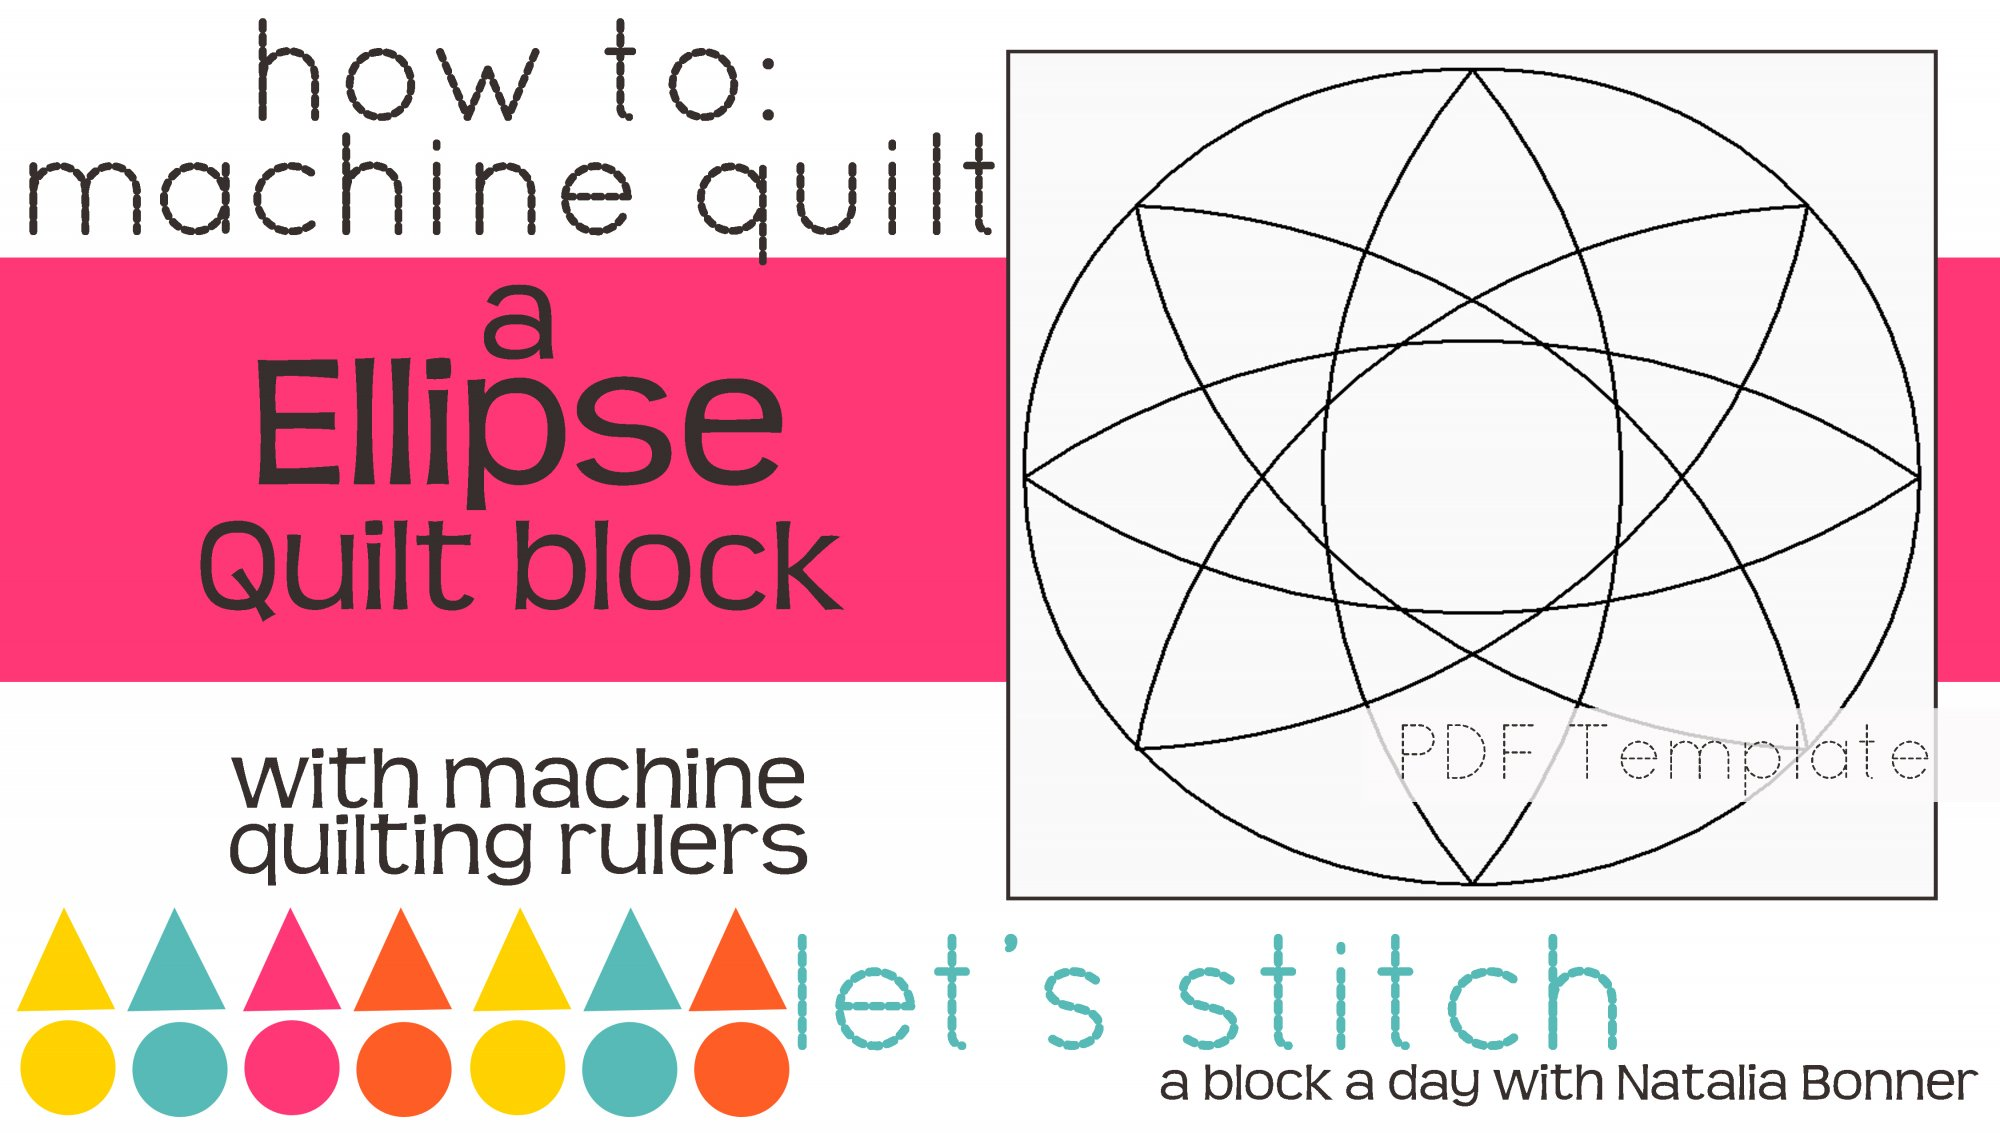 Let's Stitch - A Block a Day With Natalia Bonner - PDF - Ellipse